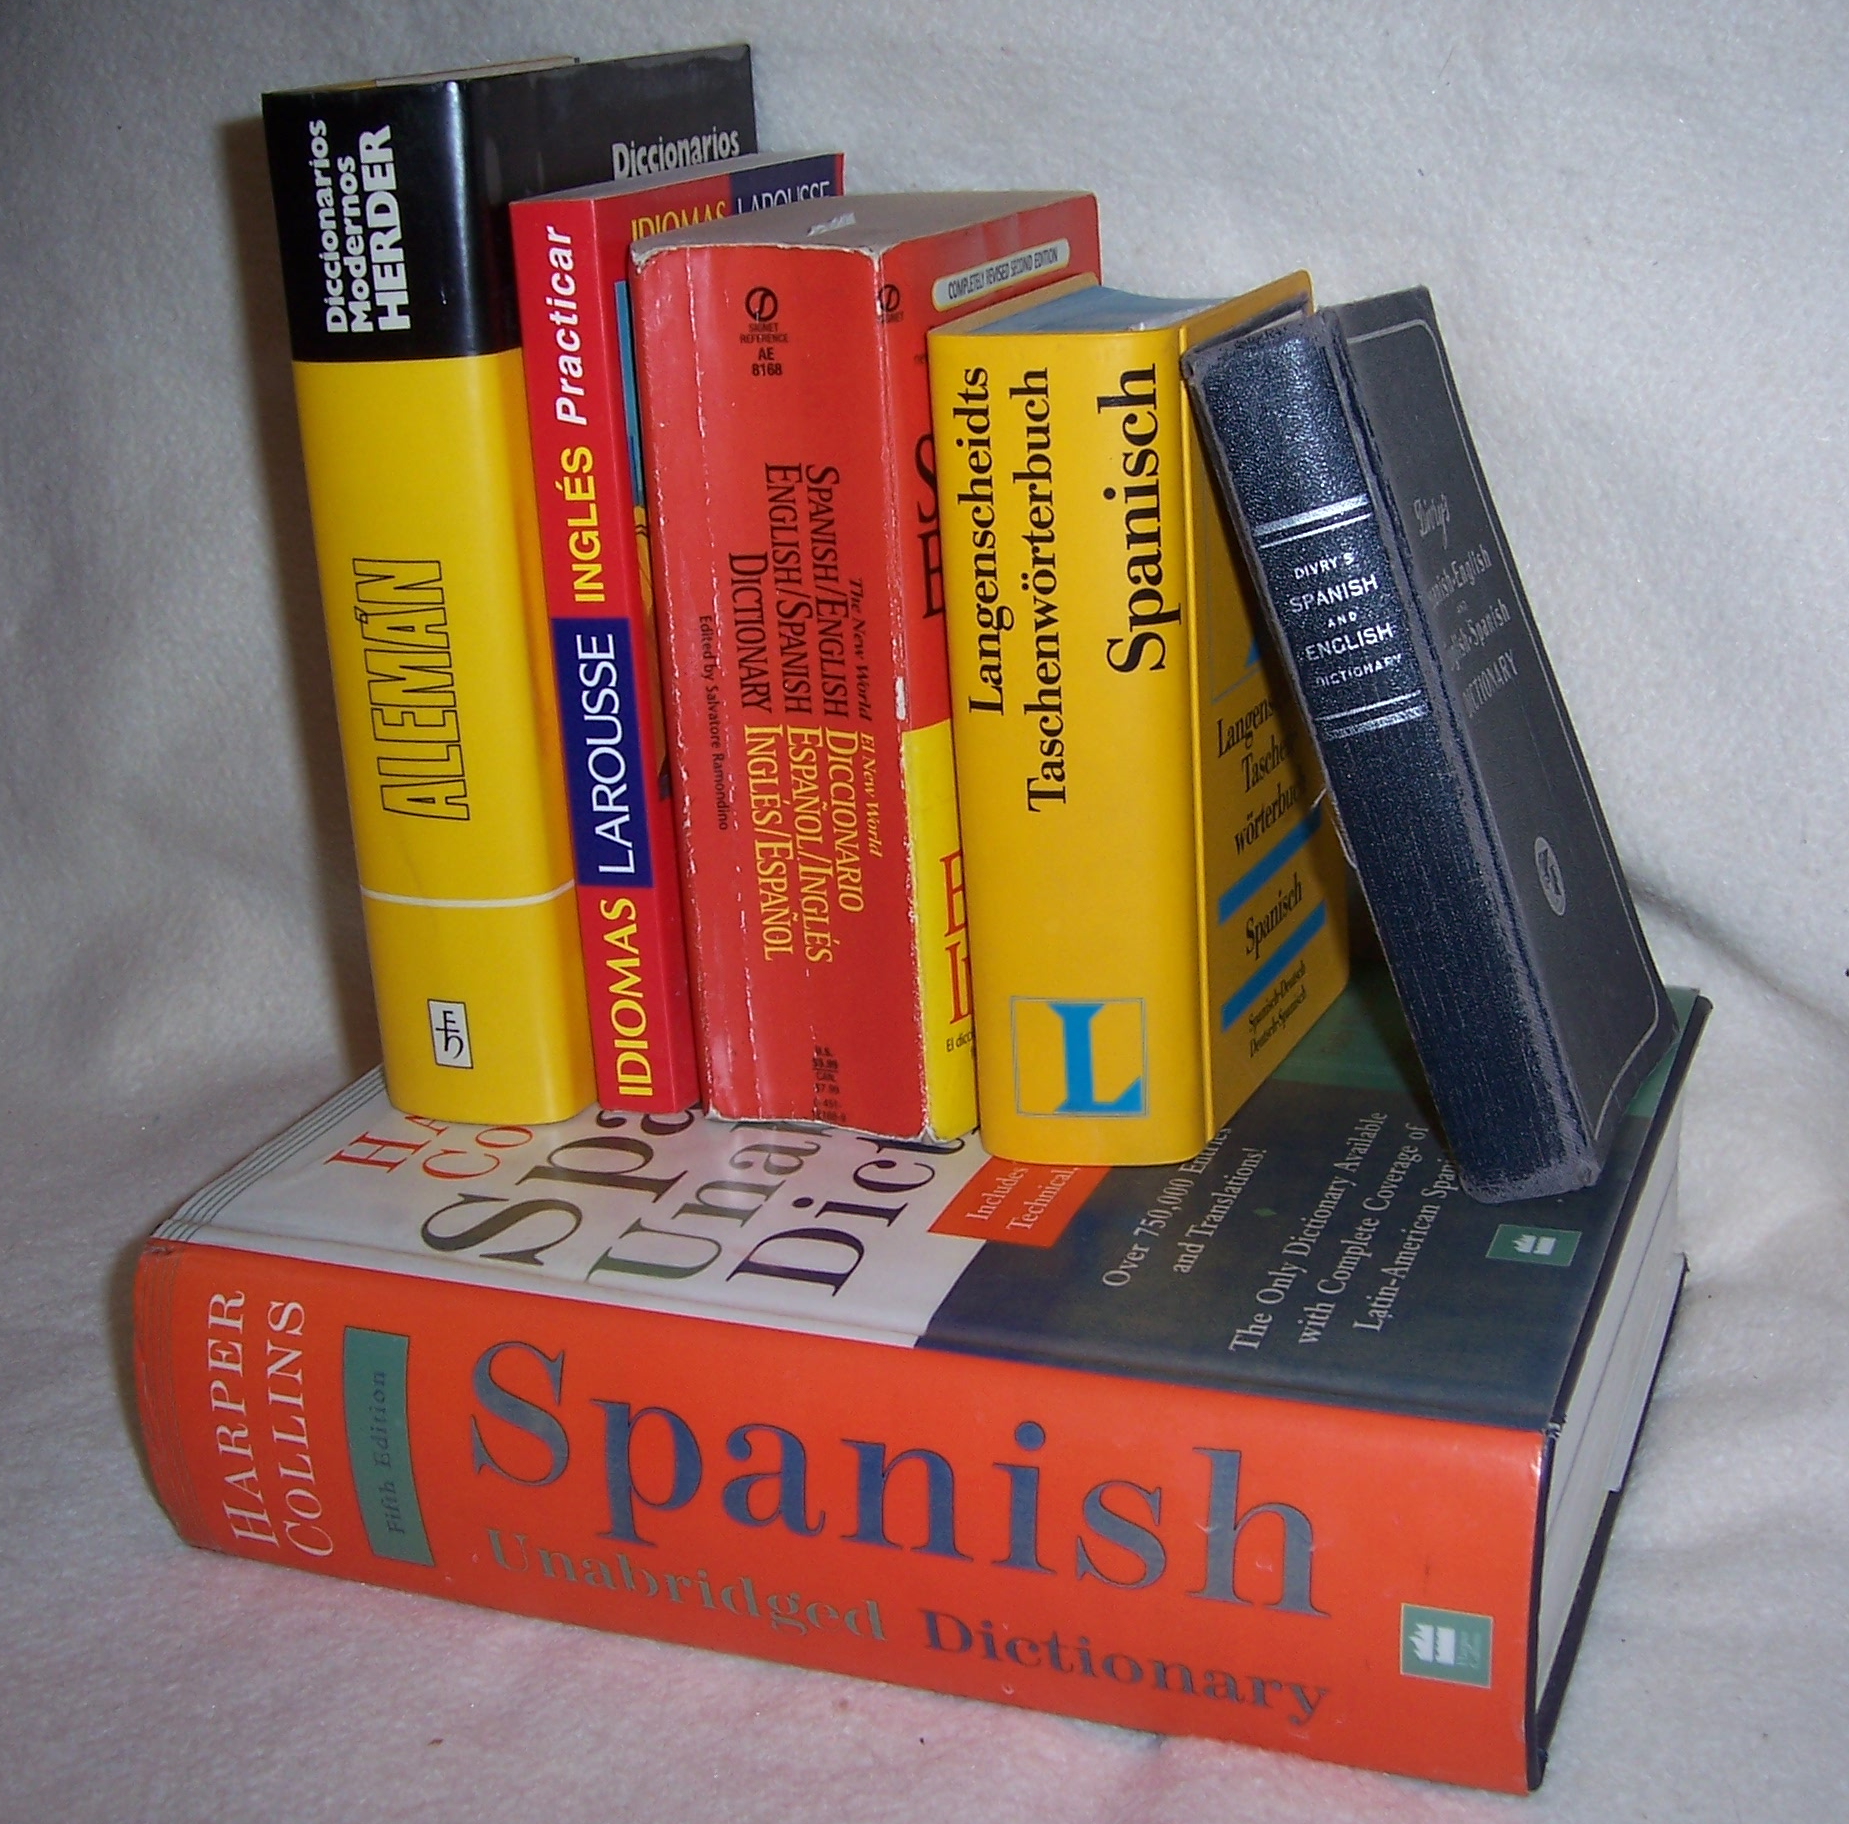 Learning Spanish? Click here to discover our selection of the BEST books you need to read in order to improve your Spanish skills!